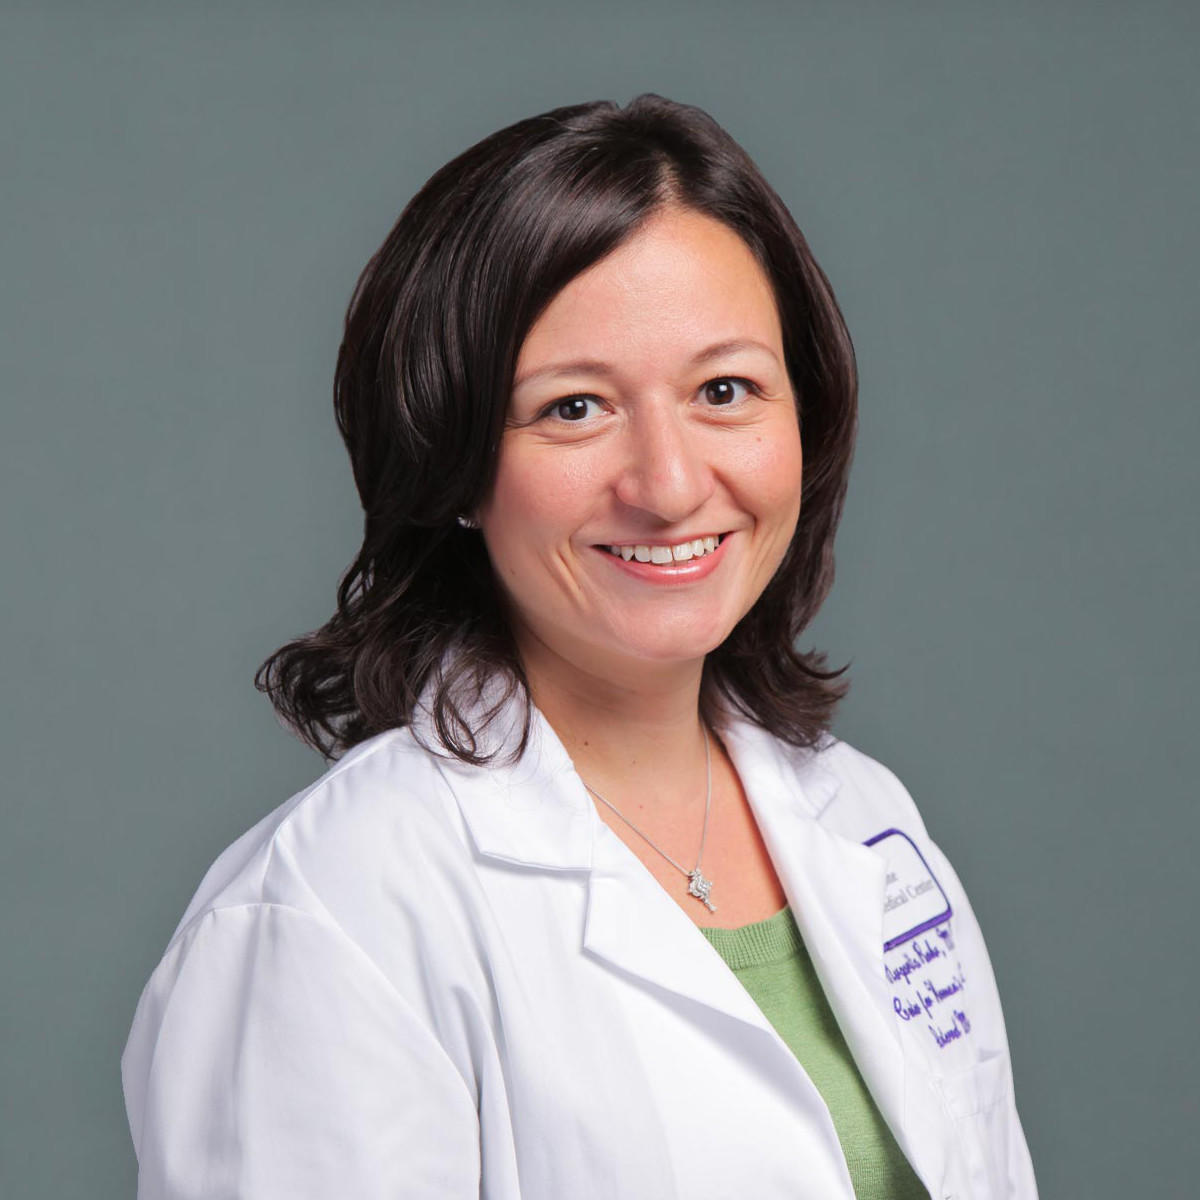 Margarita R. Rohr, MD